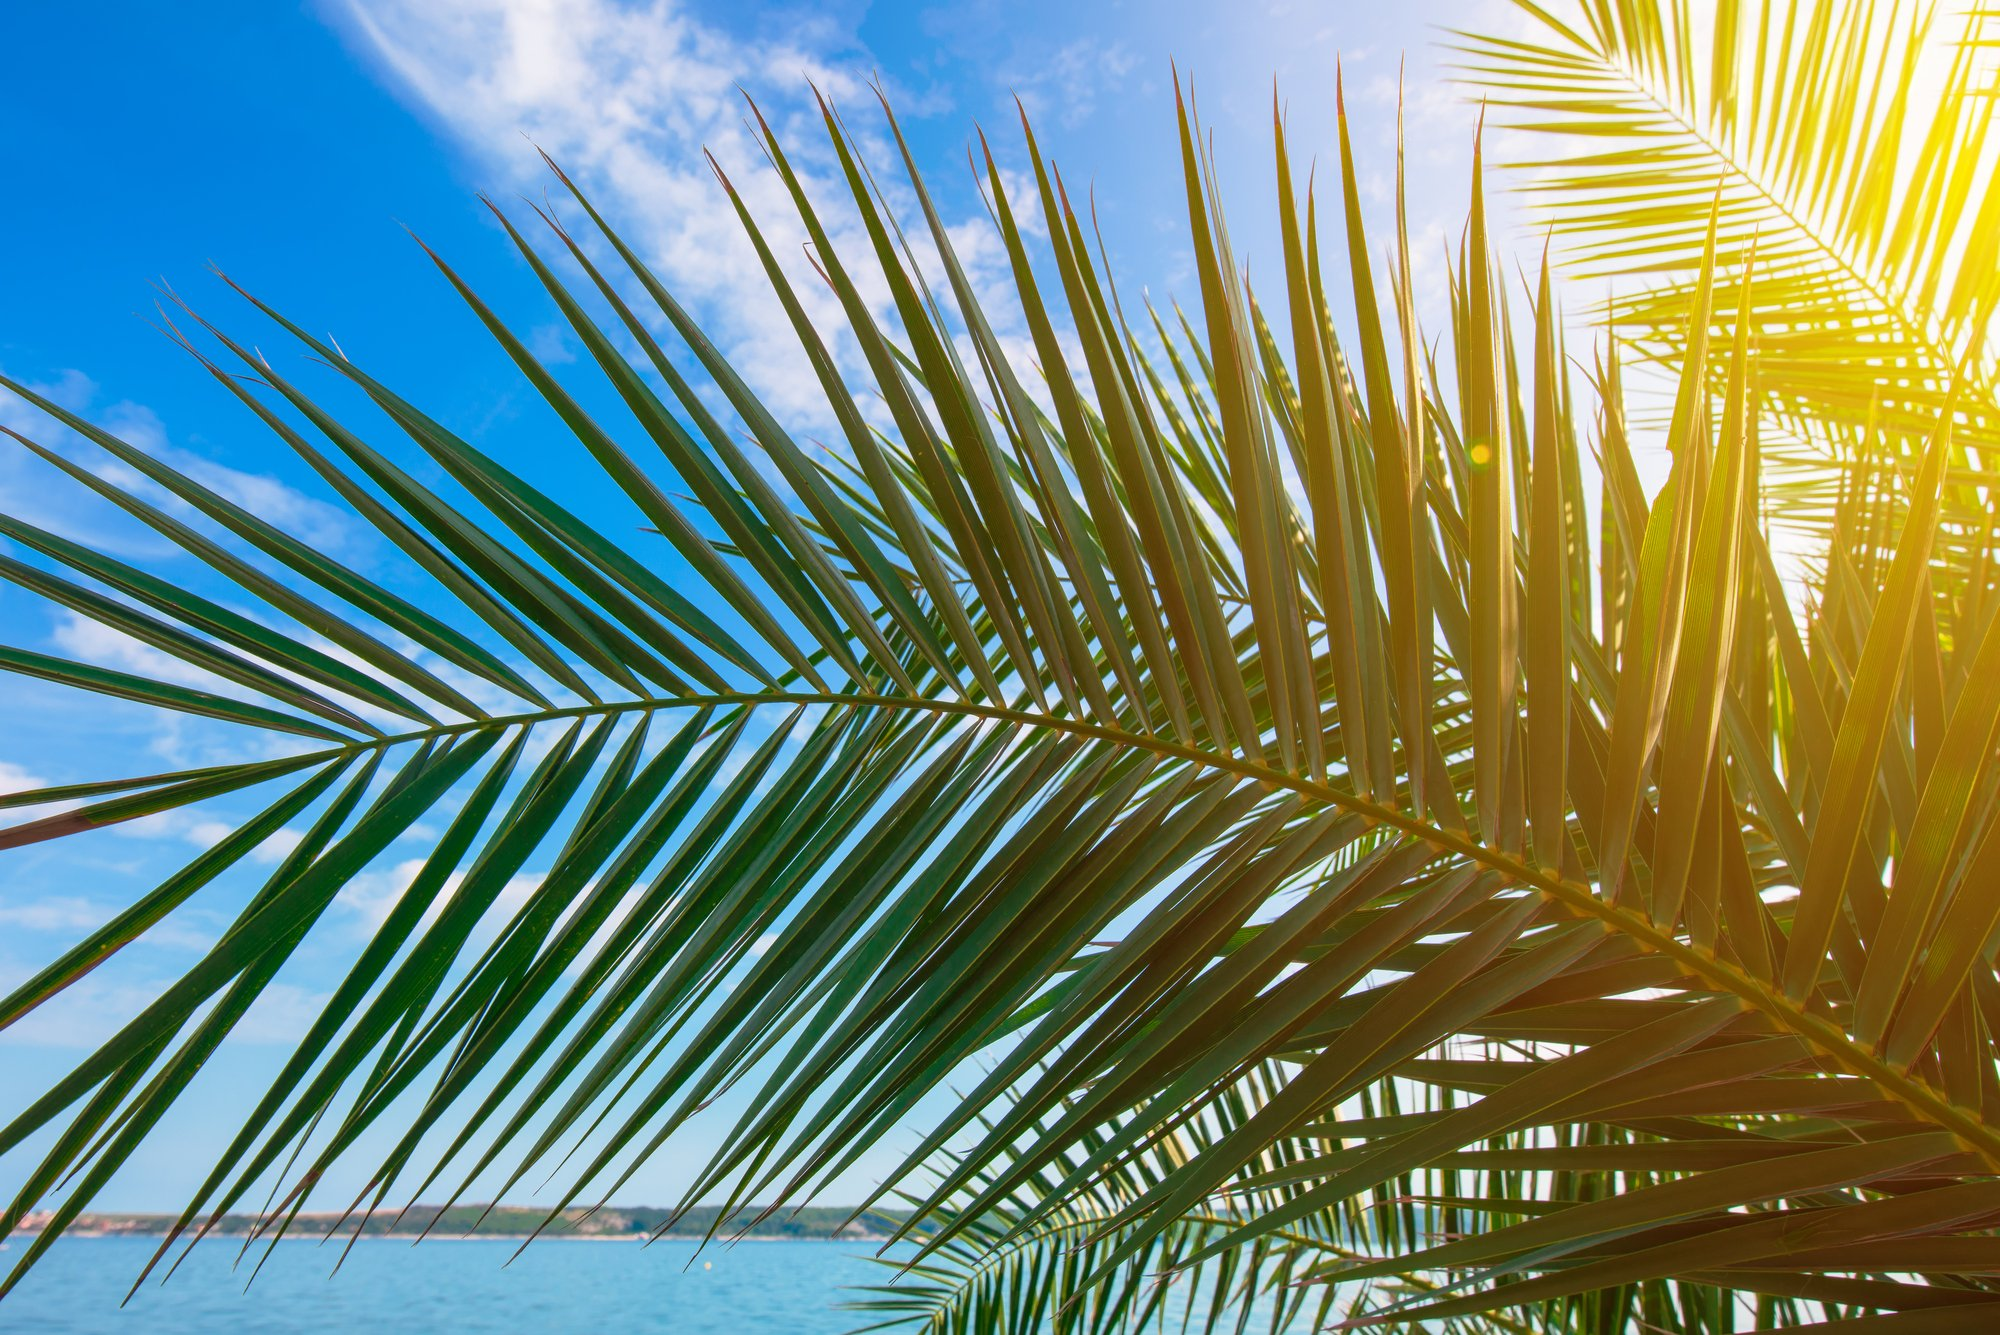 Green palm tree leaves against blue summer sky